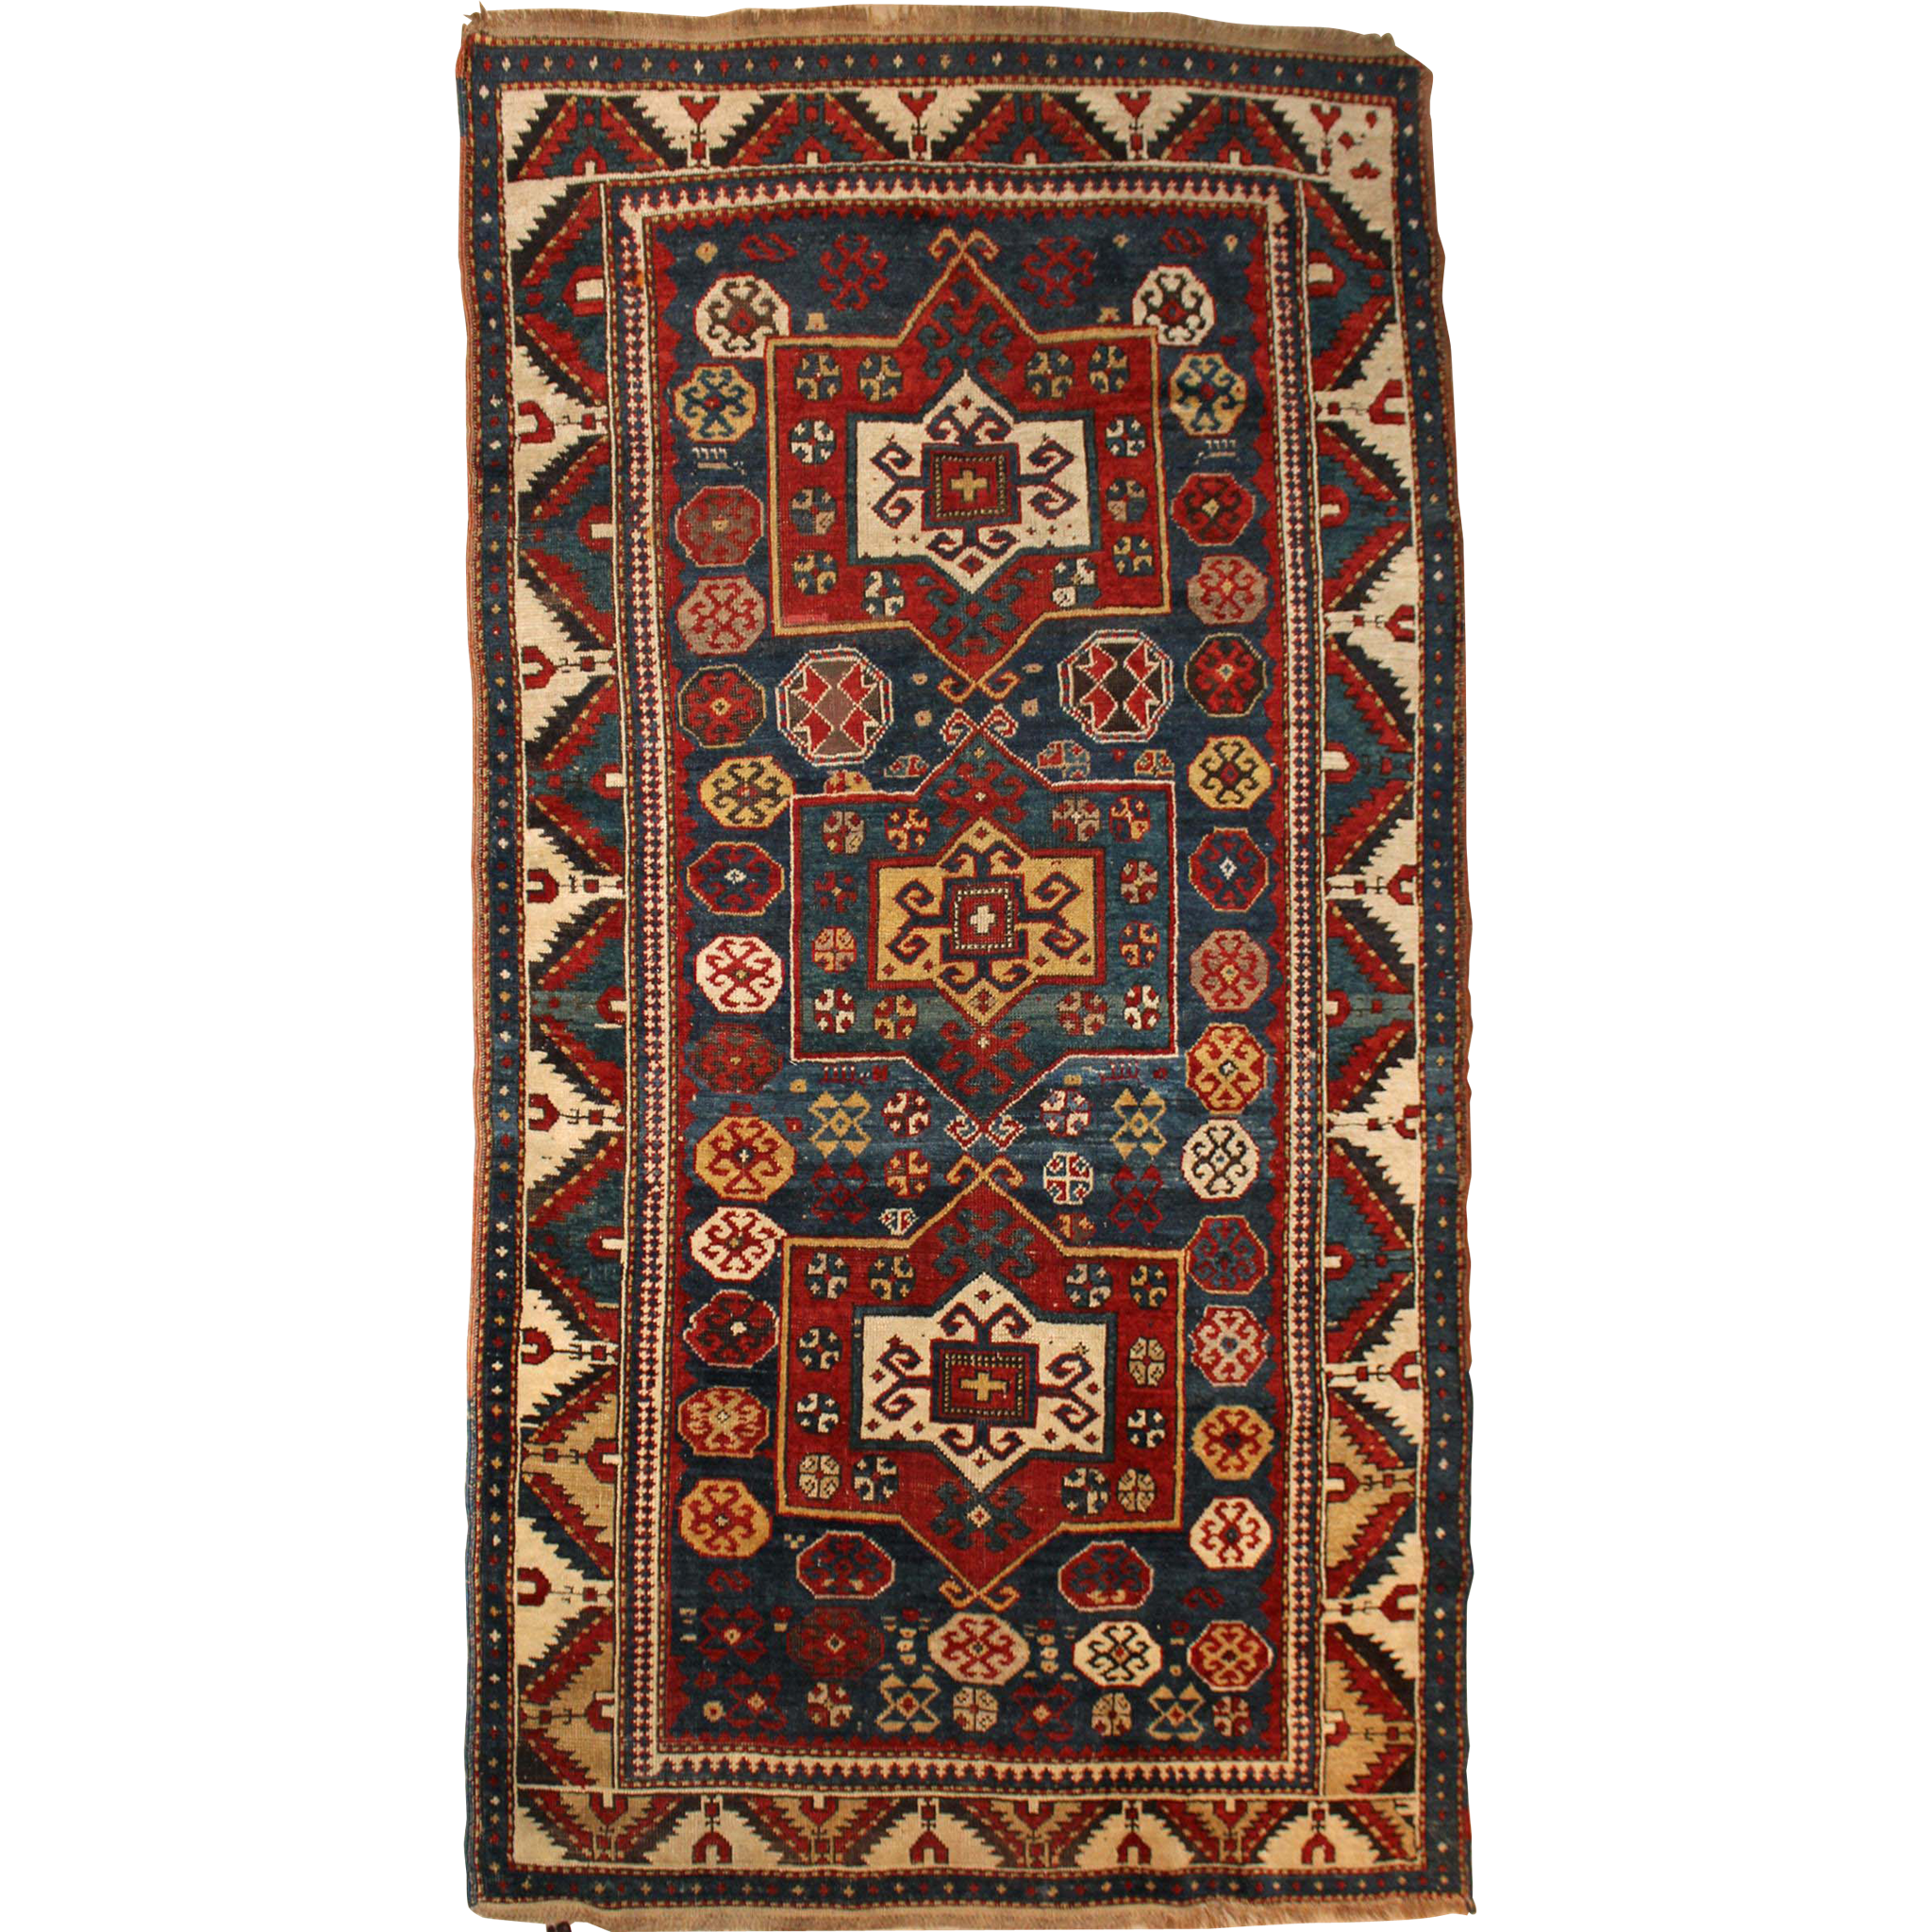 Antique Kazak Scatter Rug or Carpet, circa 1900